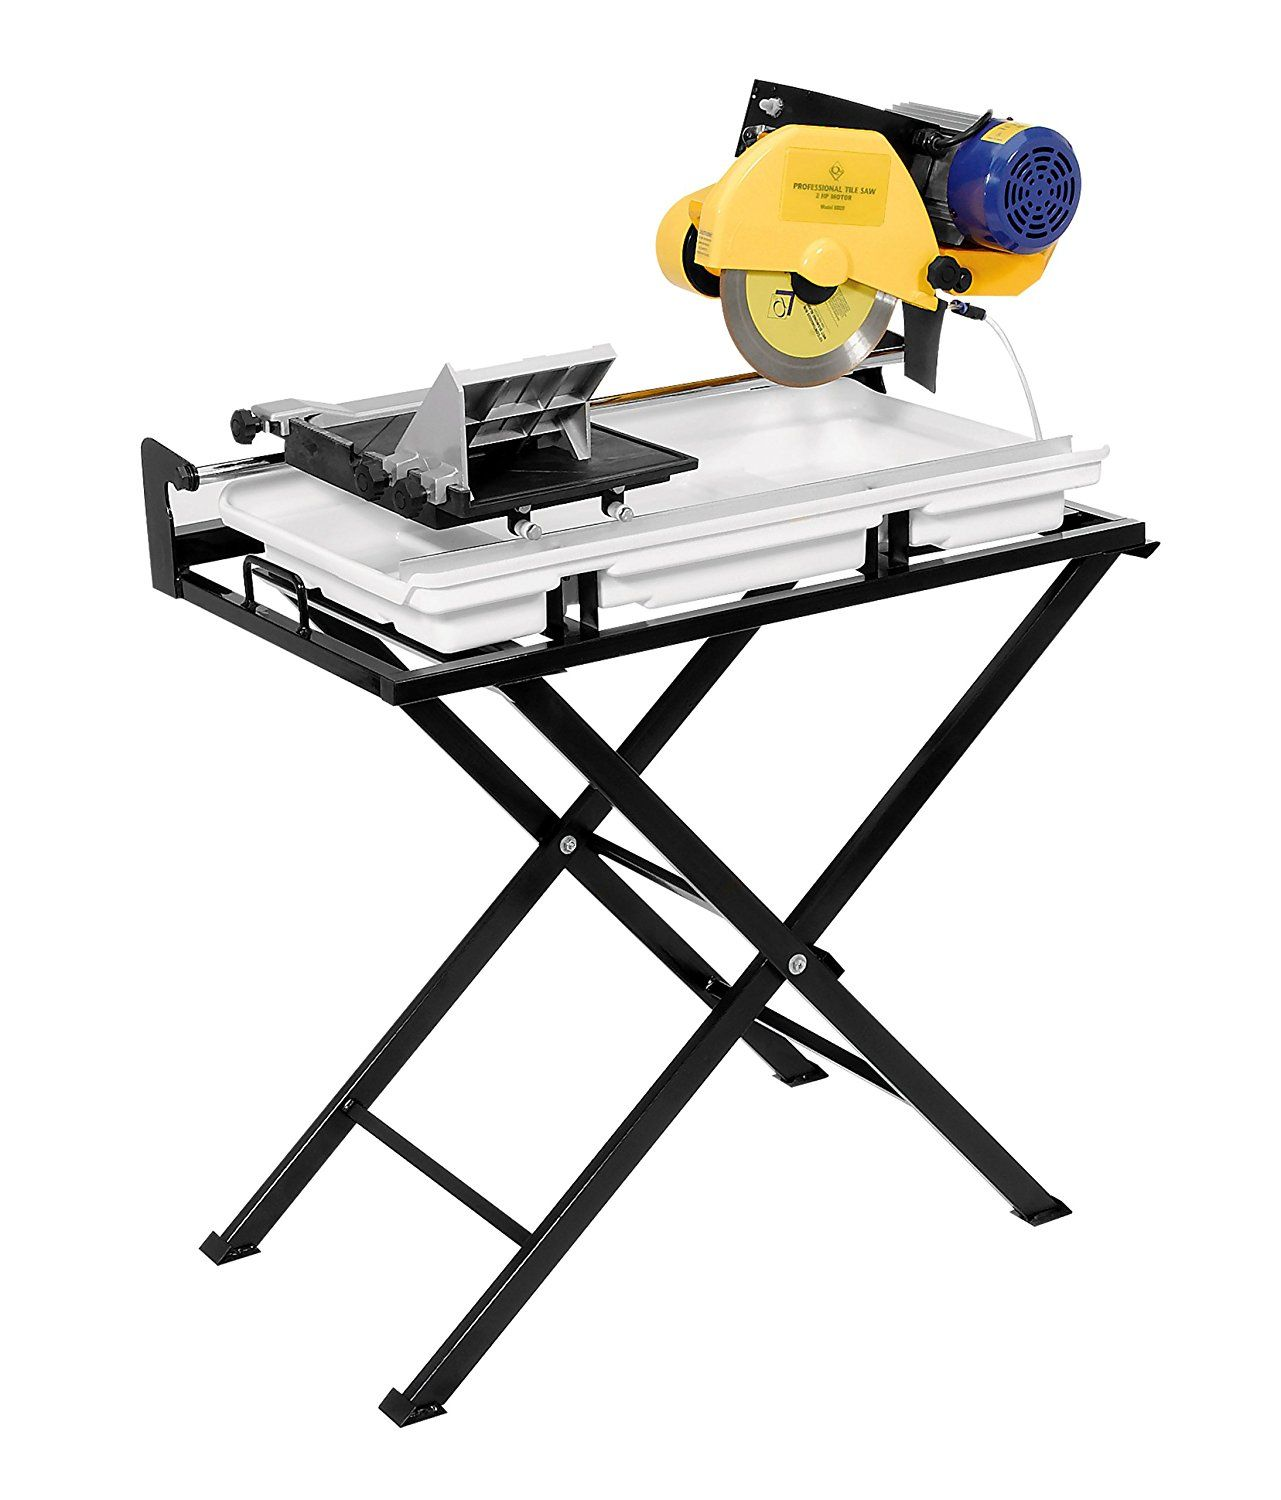 10 Best Tile Saw Reviewed In Detail Dec 2020 Tile Saw Small Workspace Tile Projects